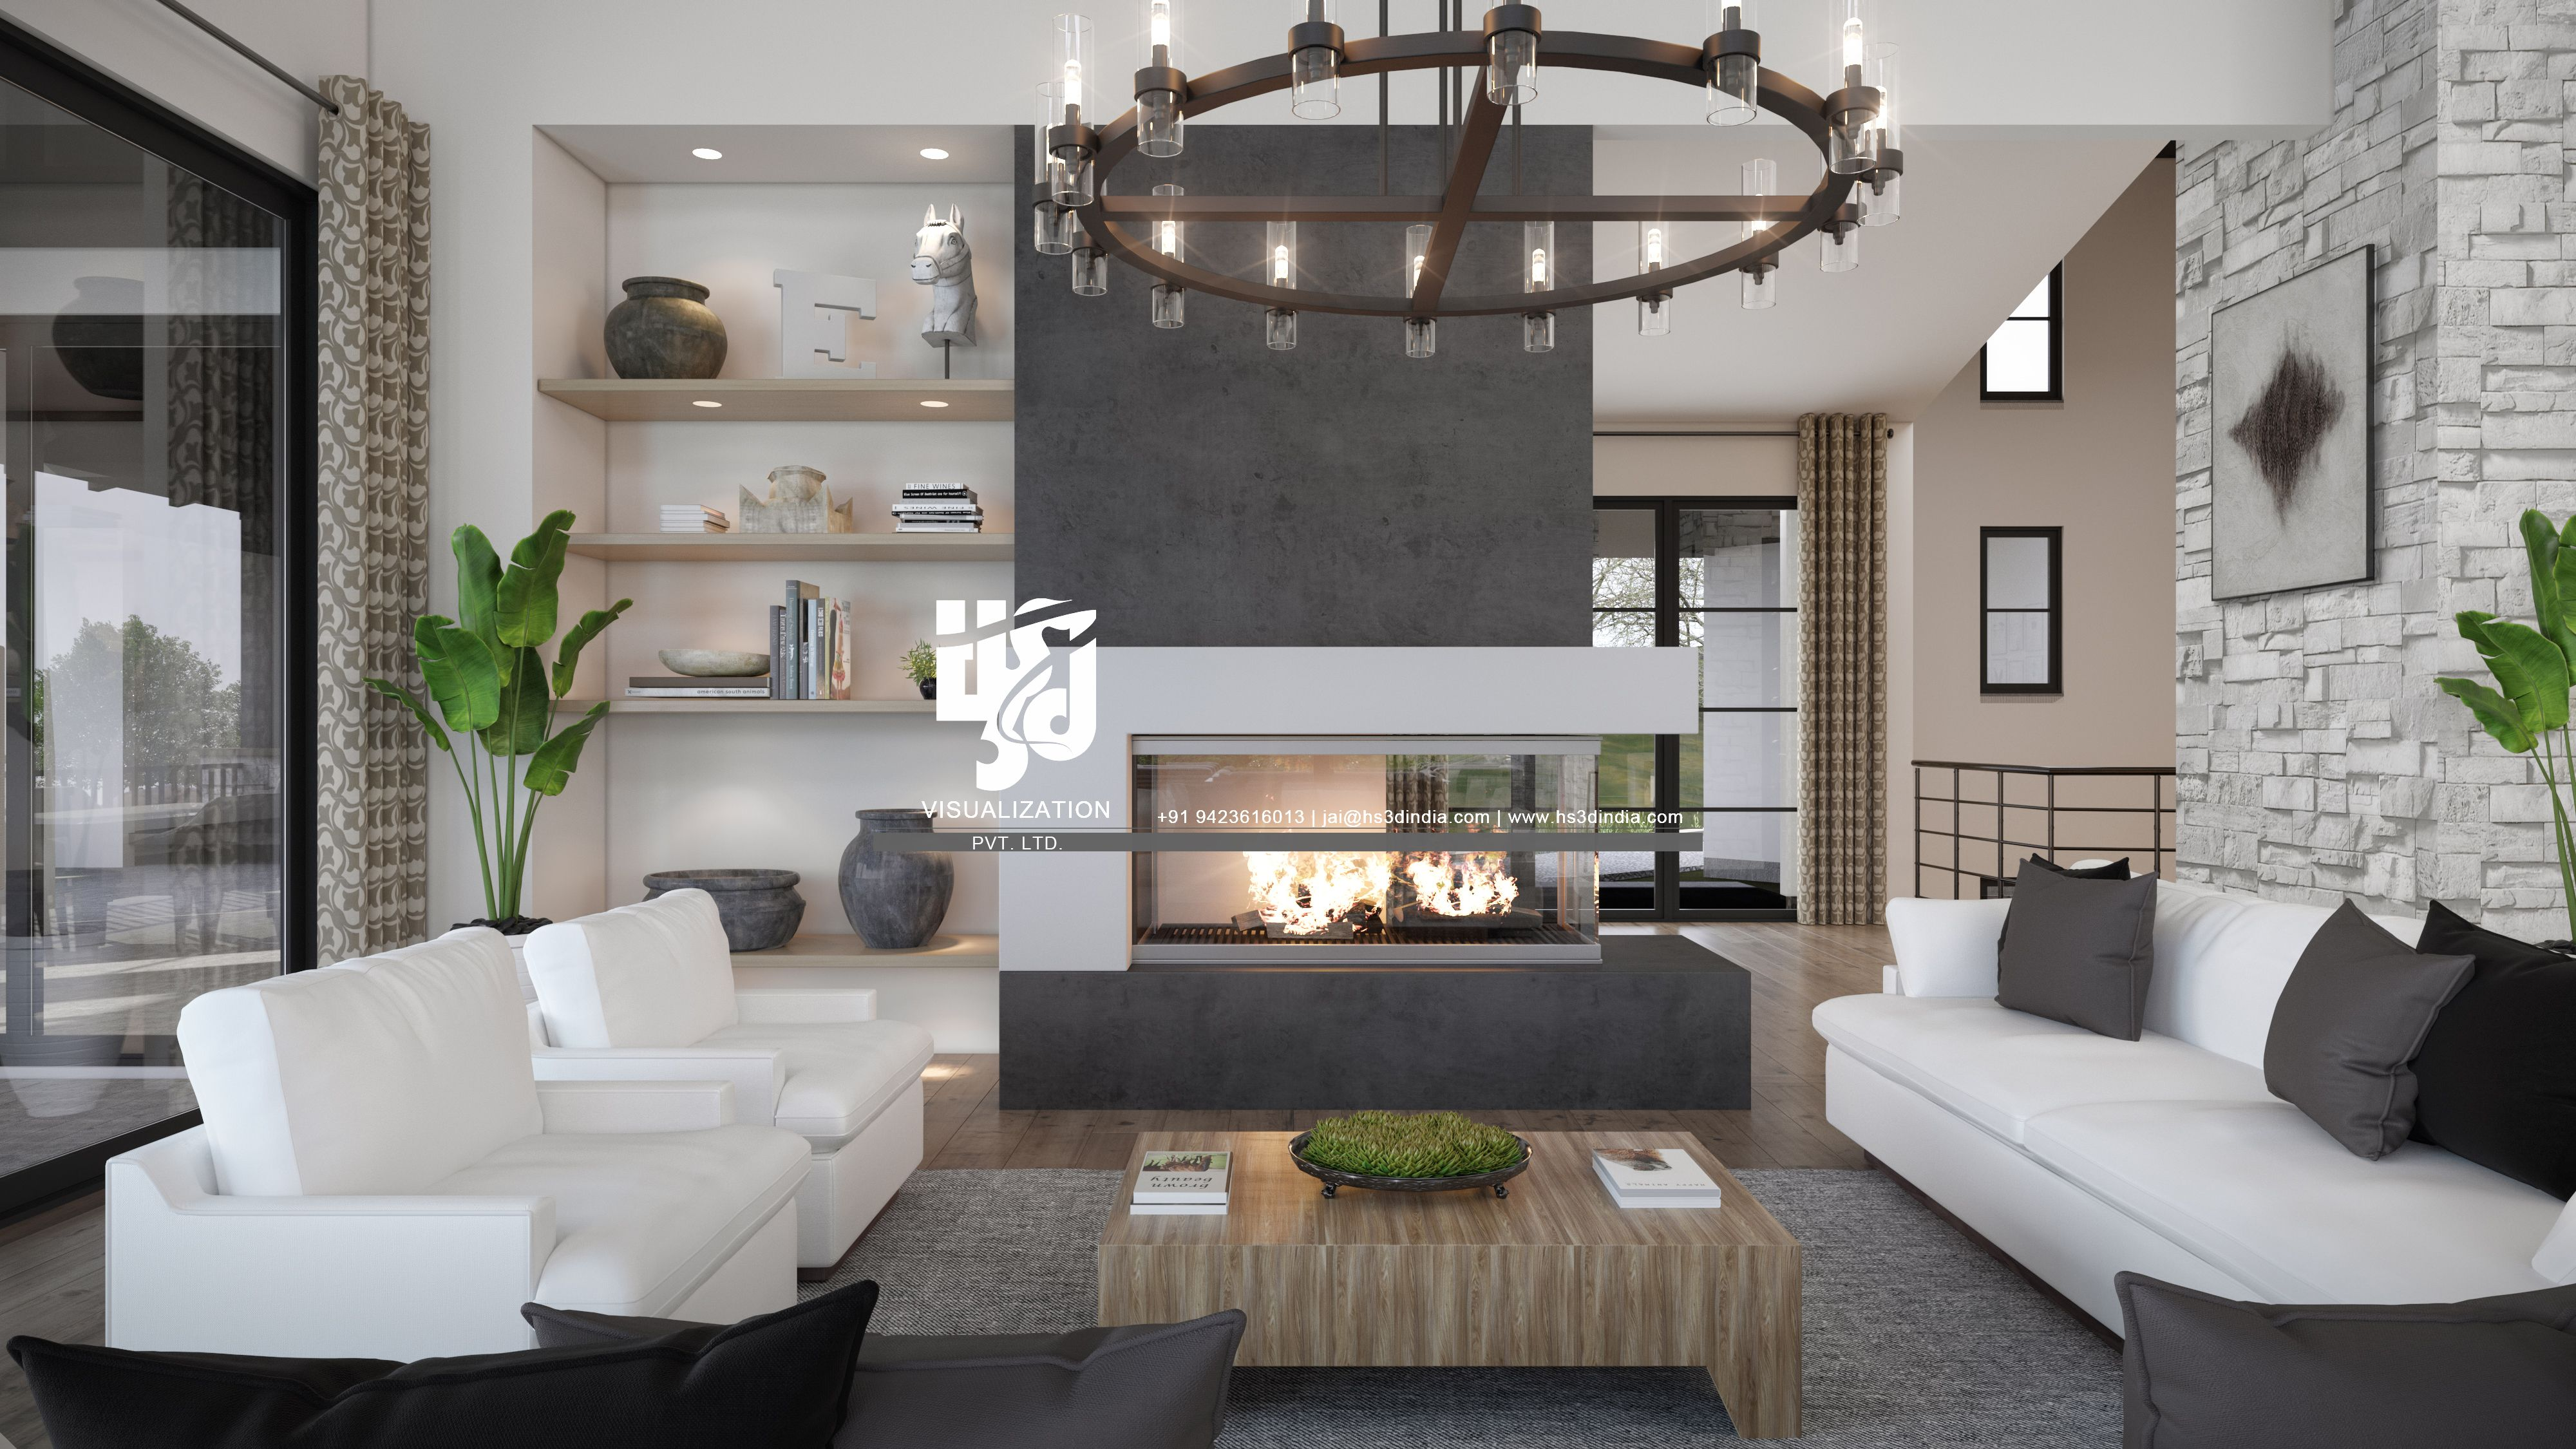 Most Popular Residential Interior Design Styles Explained